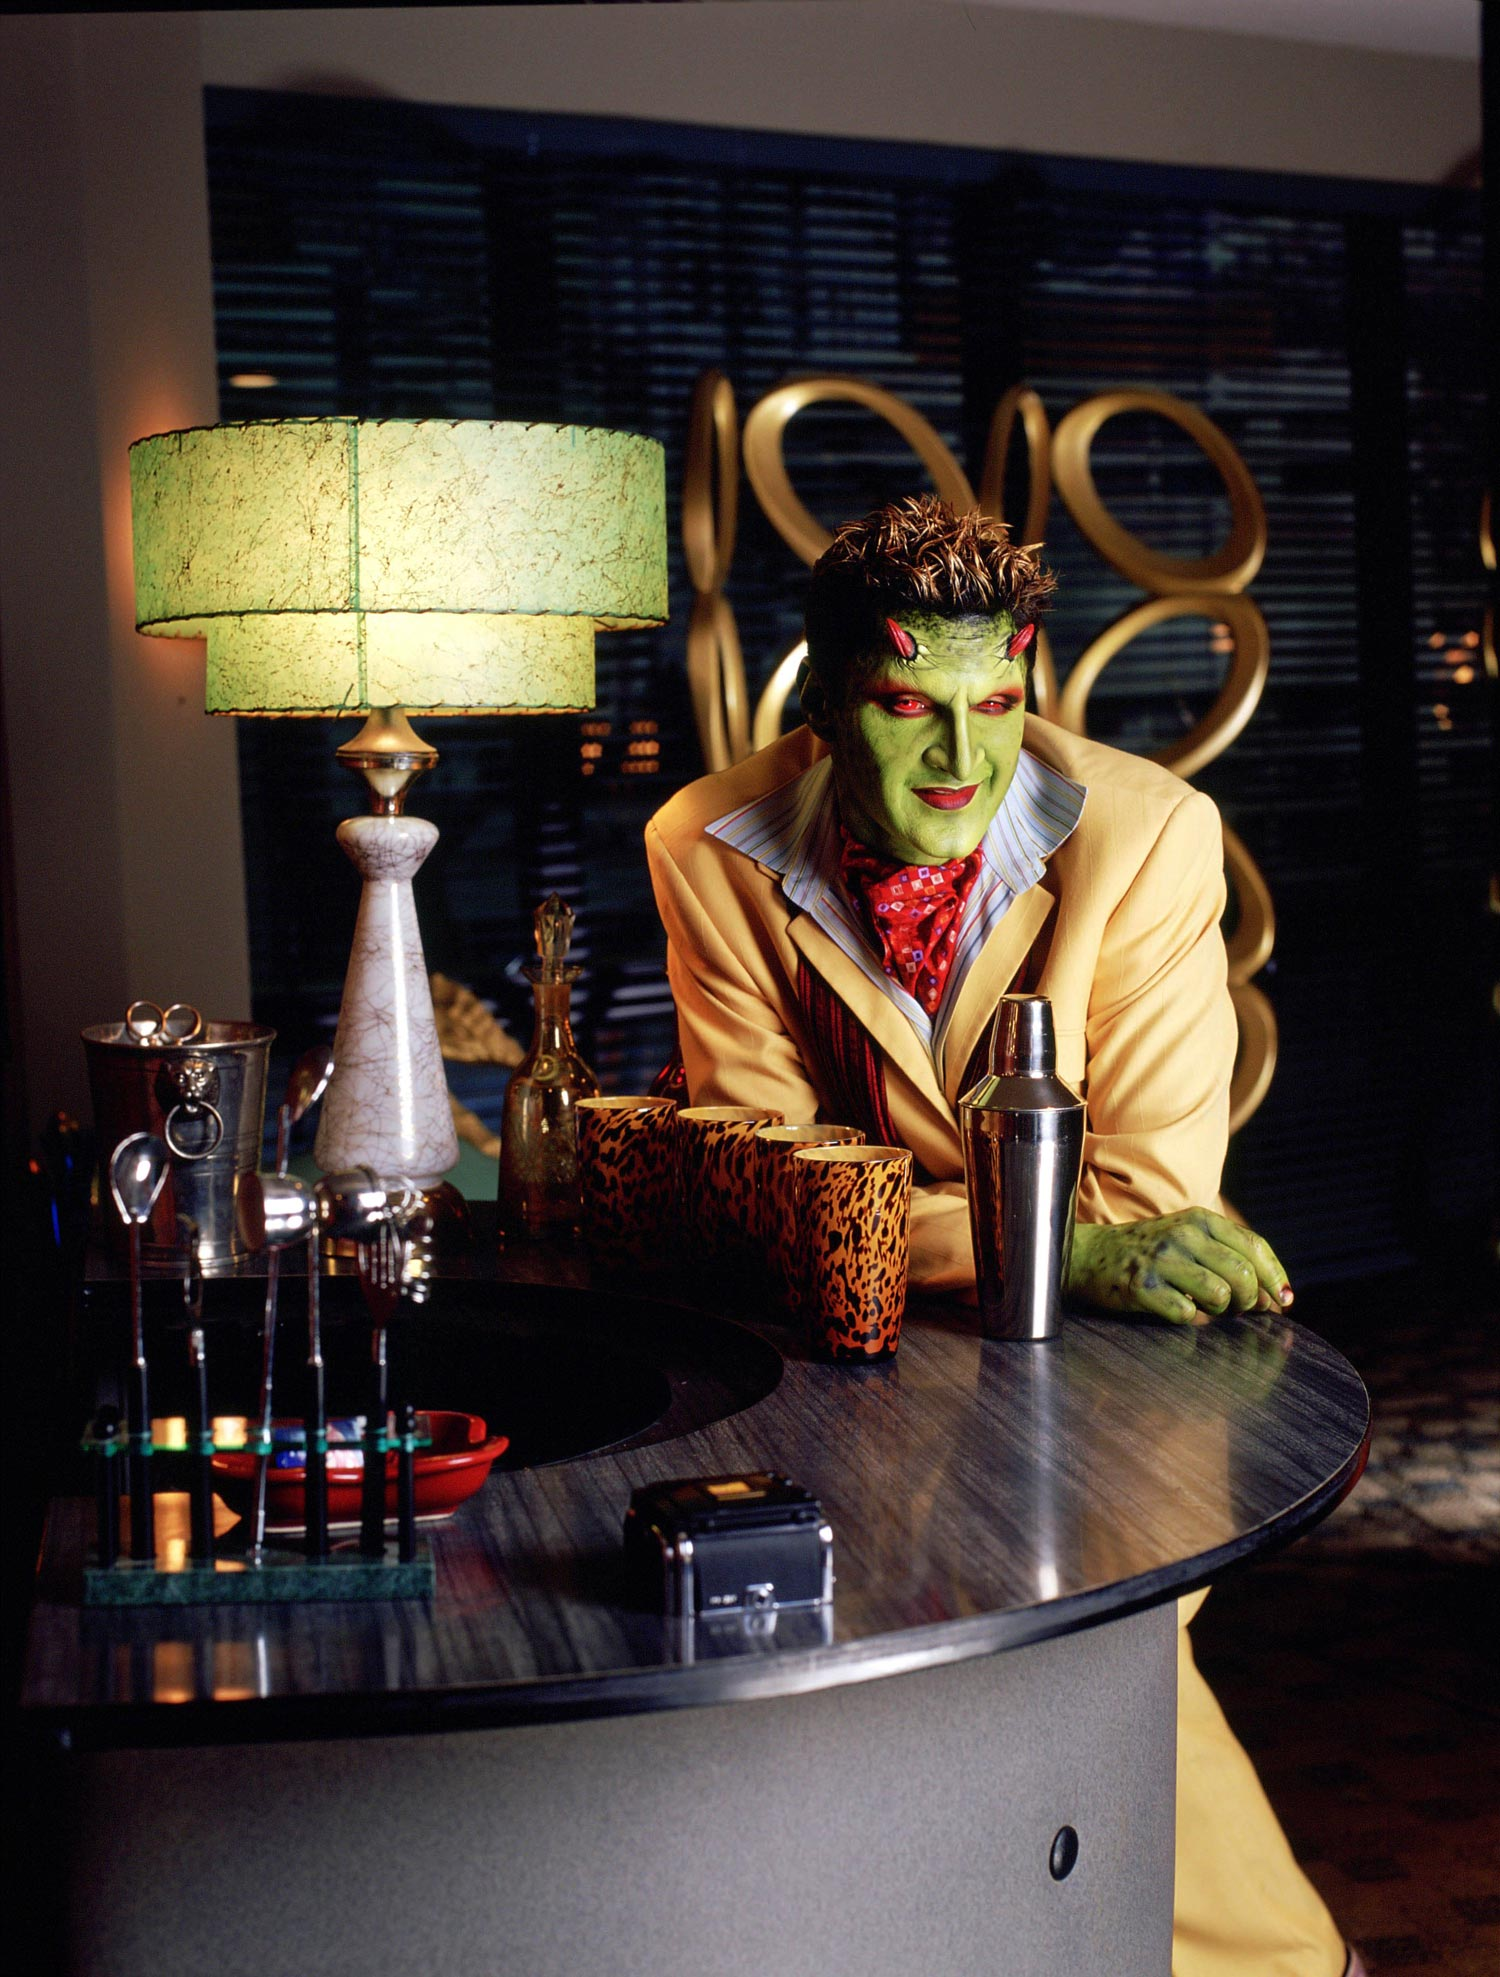 Angel Season 5 - Andy Hallett - High Quality Promotional Photos ...: http://www.whedon.info/Angel-Season-5-Andy-Hallet-High.html